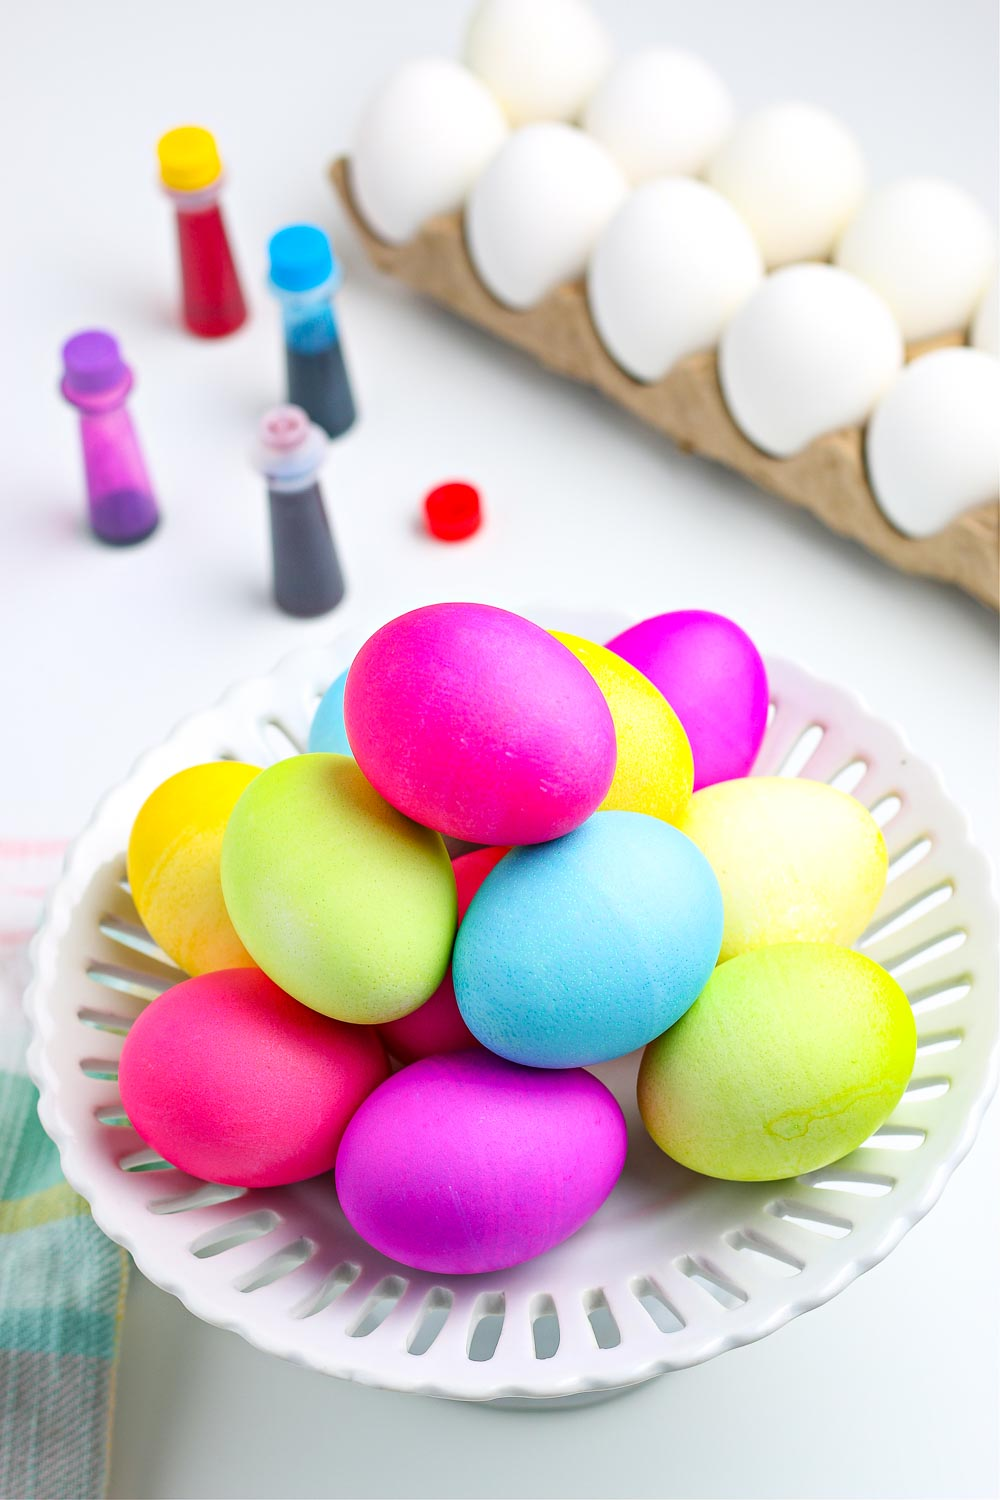 A picture of dyed Easter eggs with good coloring bottles in the background.